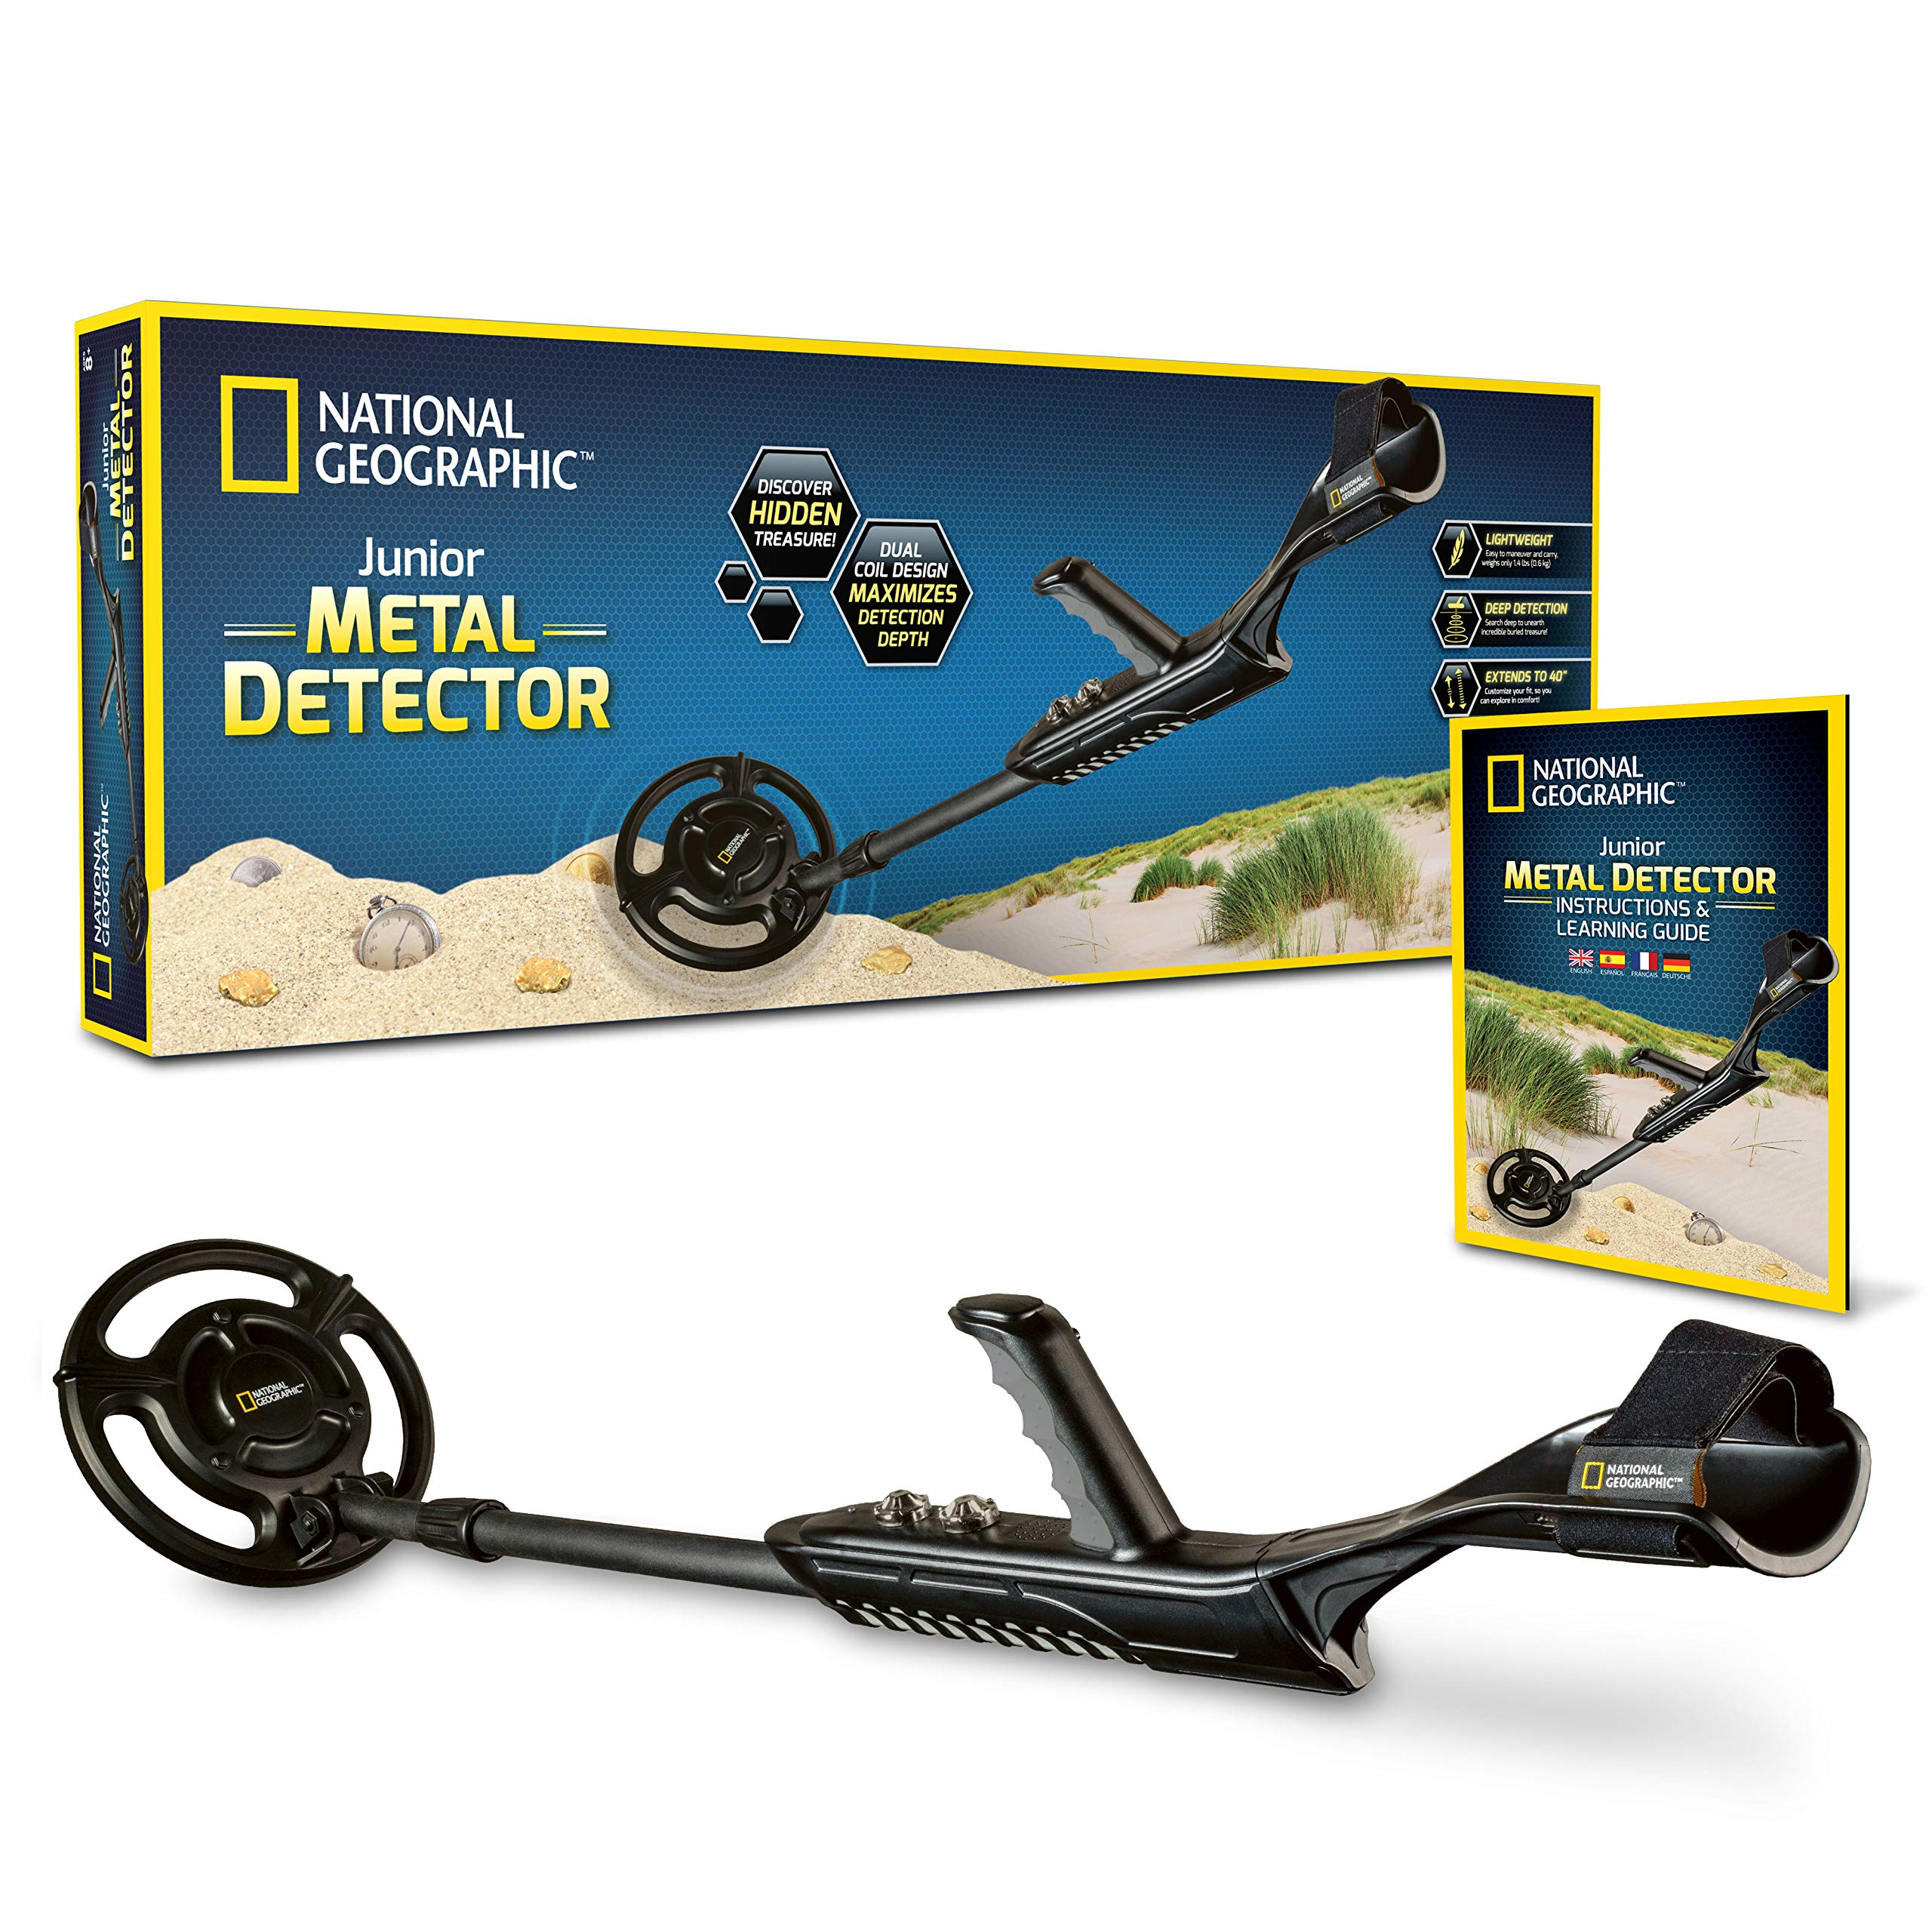 NATIONAL GEOGRAPHIC Junior Metal Detector -Adjustable Metal Detector for Kids with 7.5'' Waterproof Dual Coil, Lightweight Design Great for Treasure Hunting Beginners by NATIONAL GEOGRAPHIC